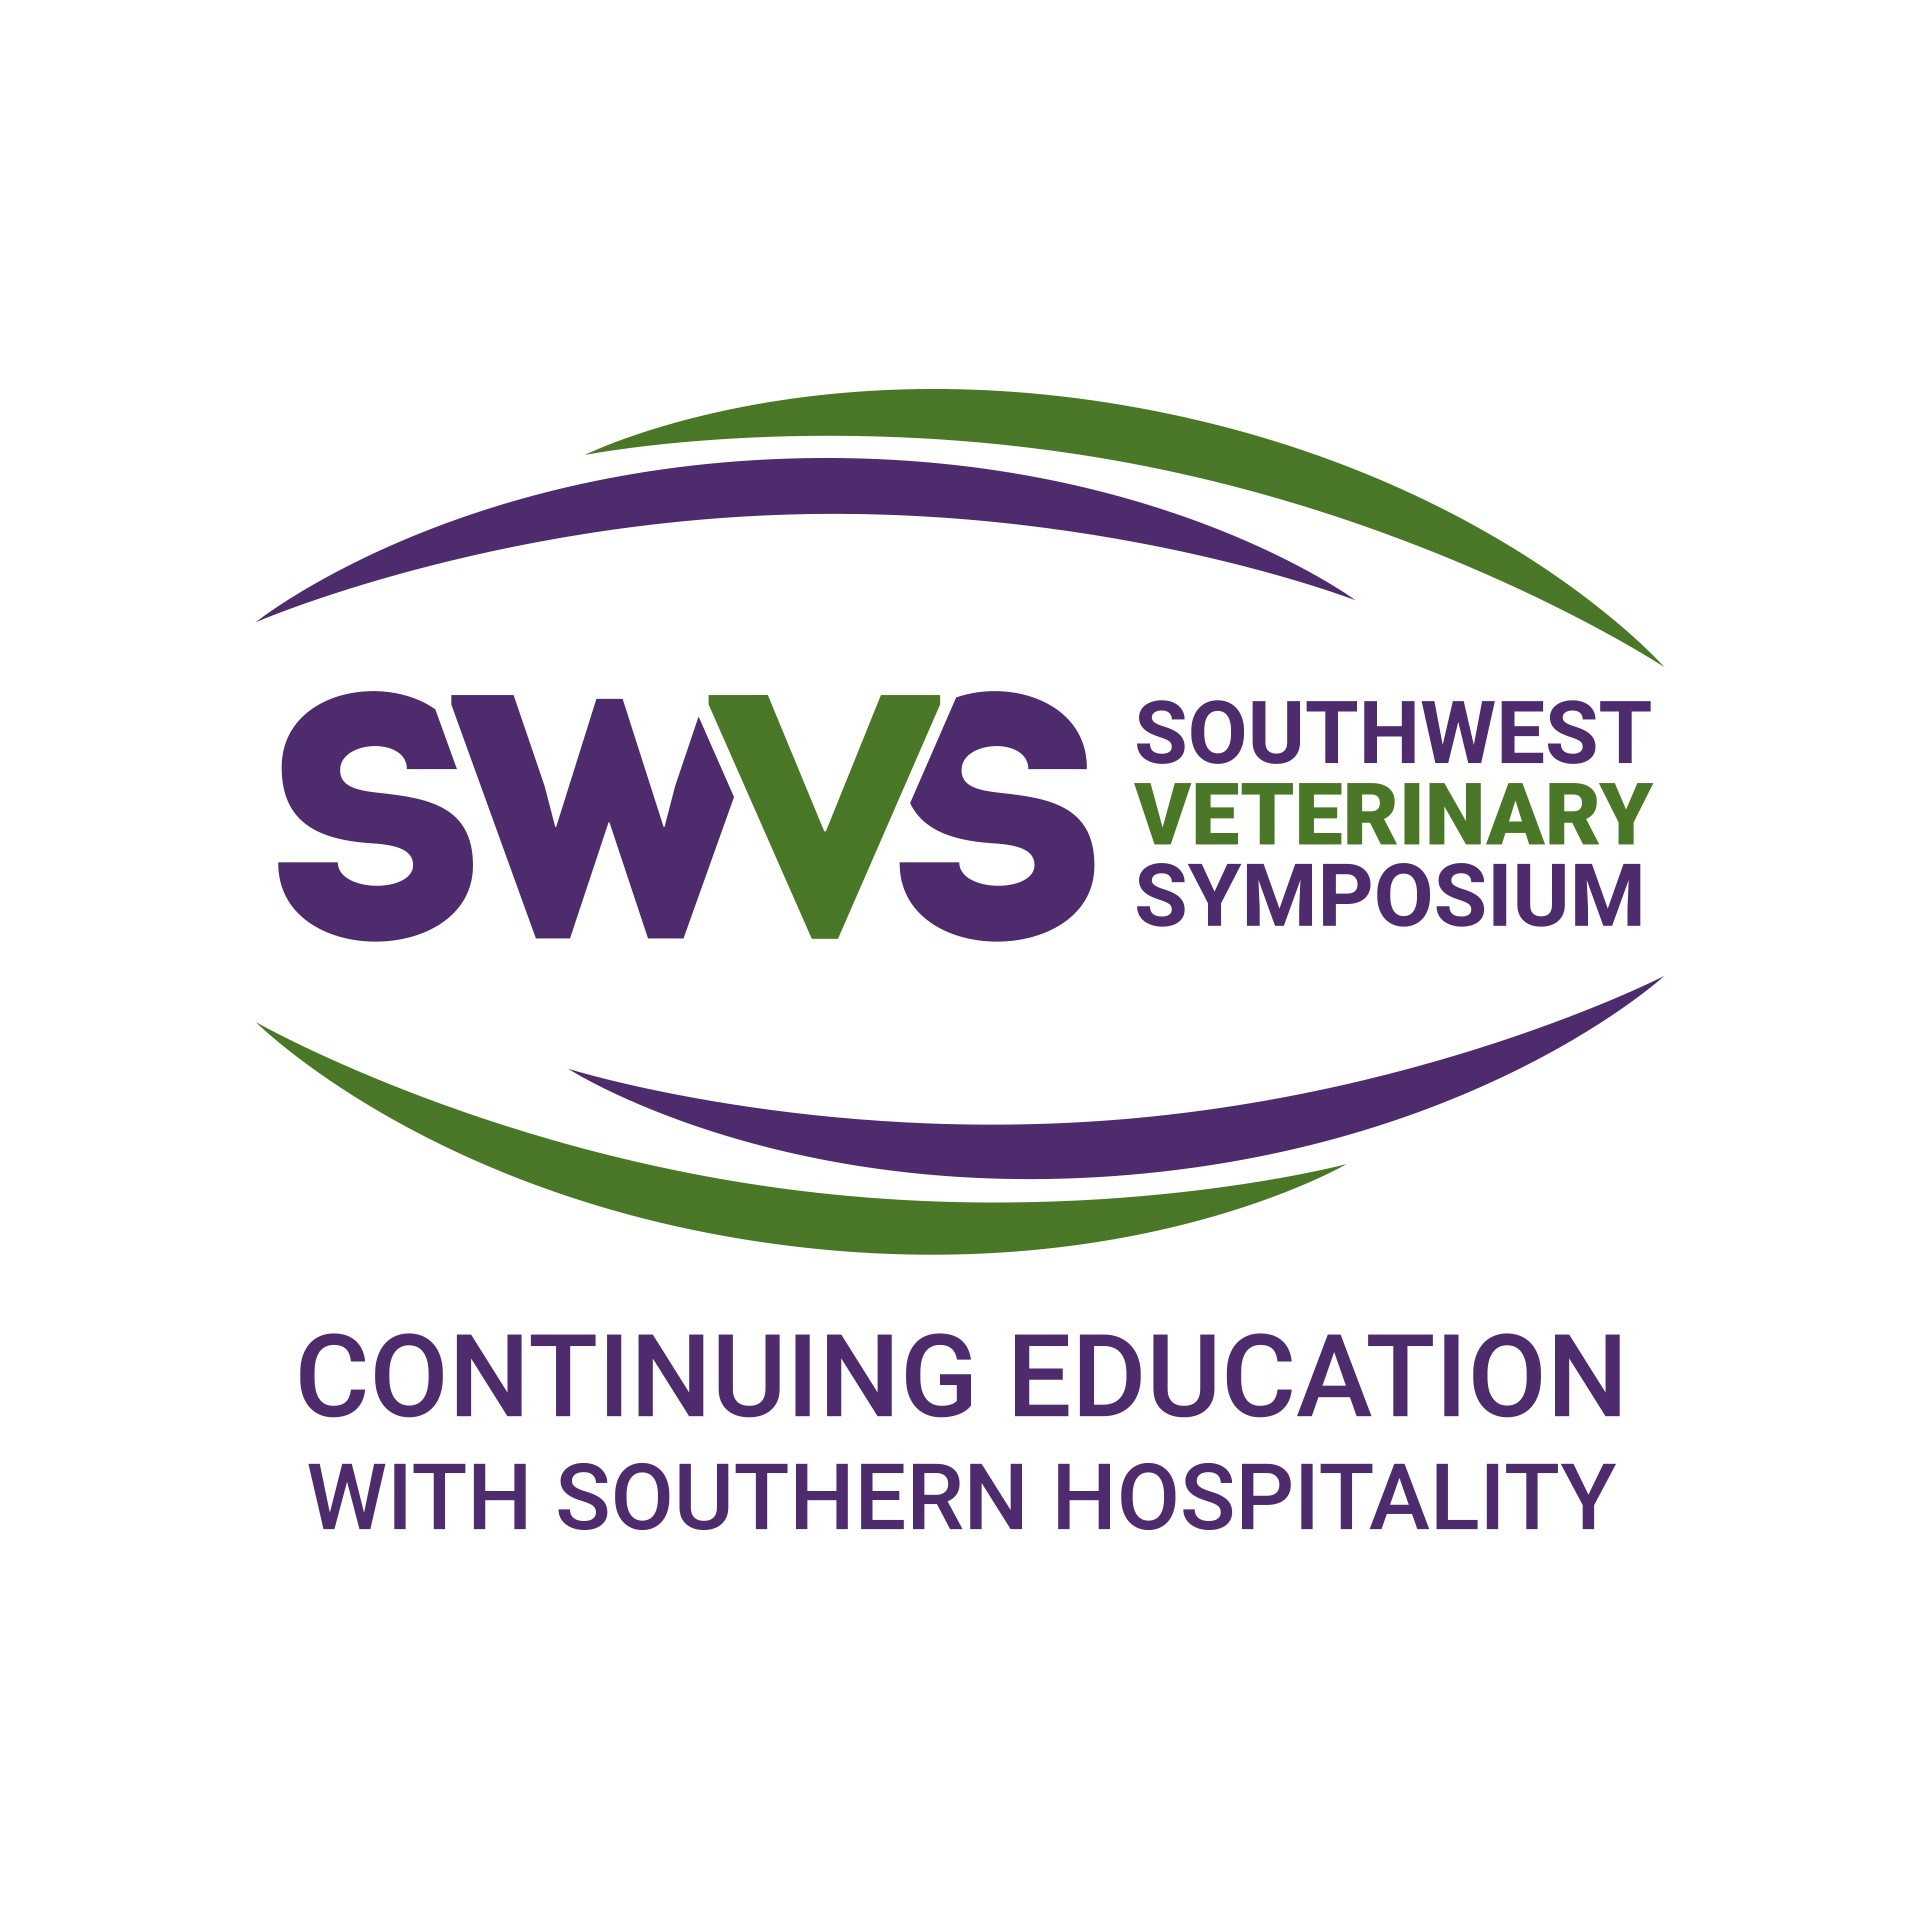 Southwest Veterinary Symposium / Annual Conference